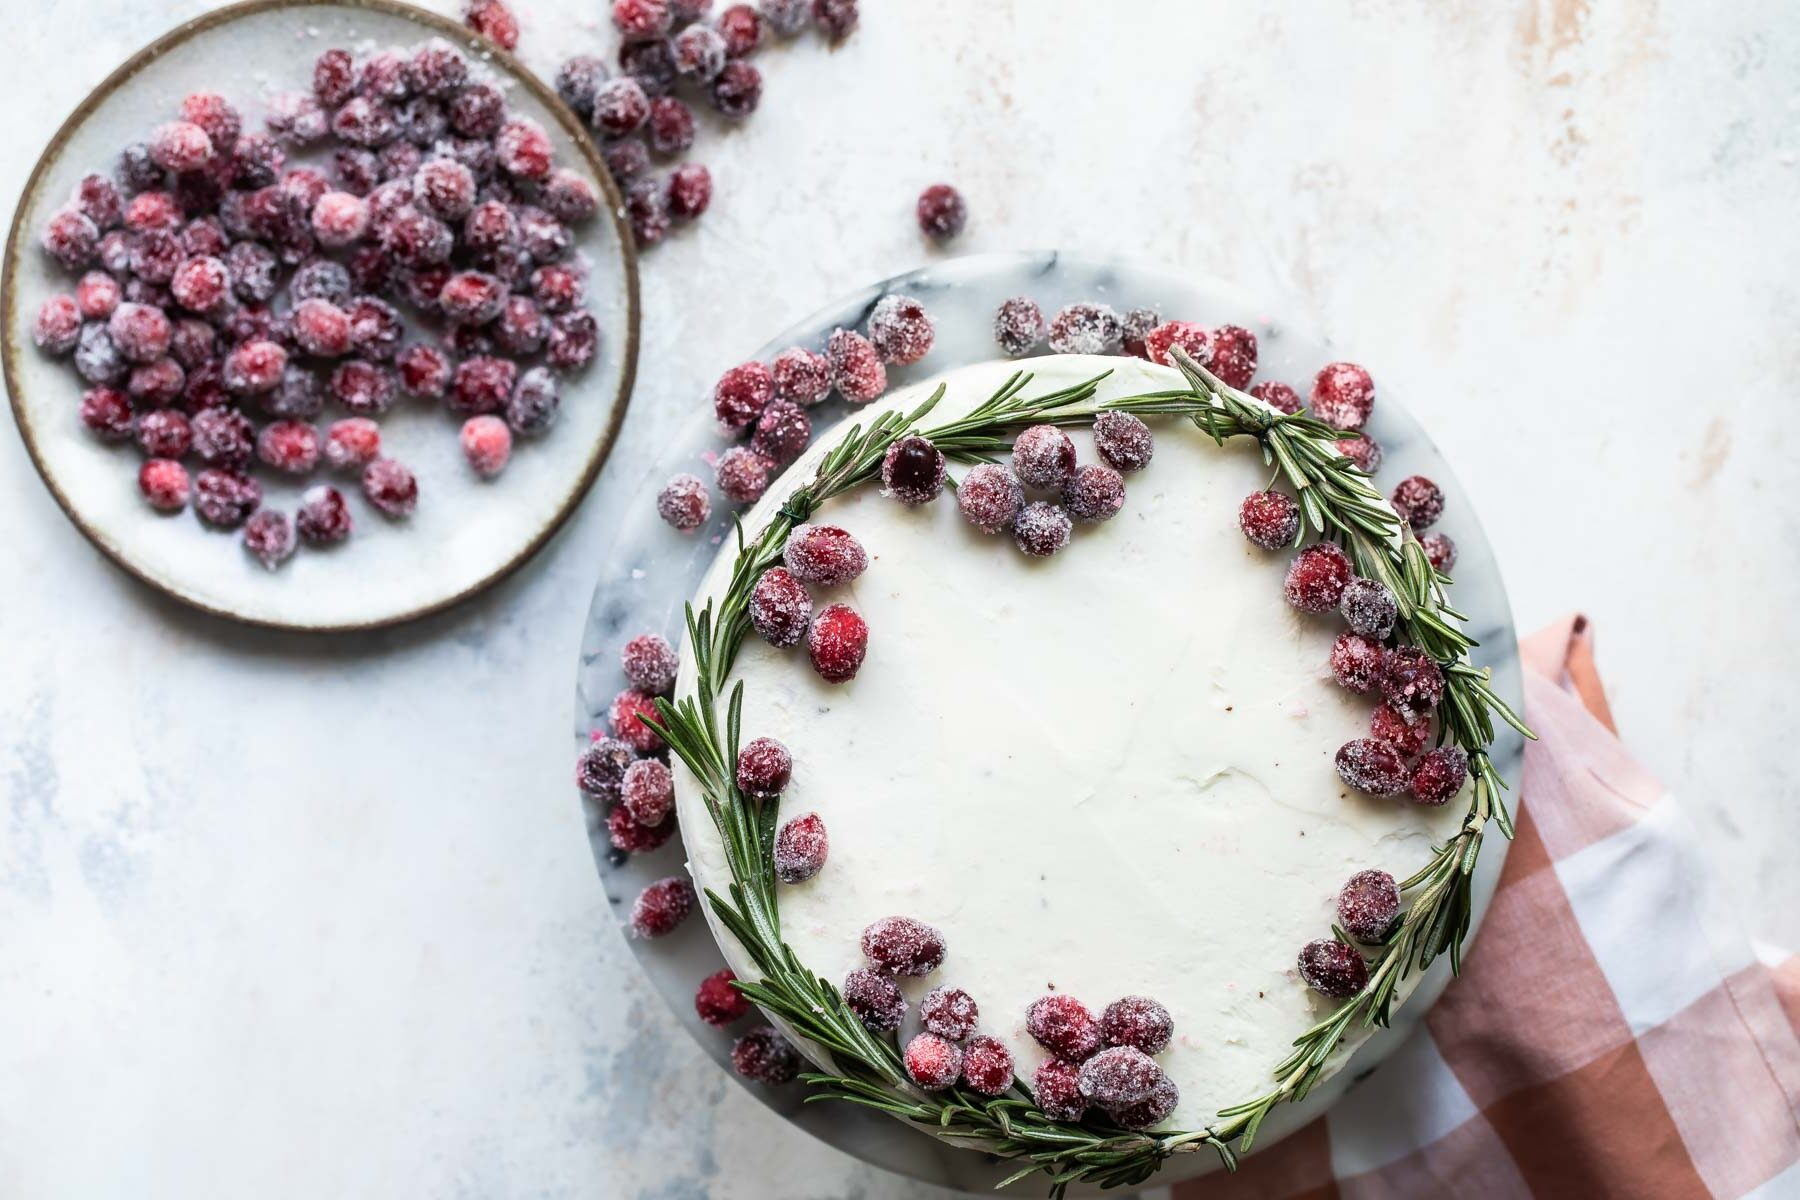 A cranberry wreath cake on a granite cake platter with a small plate of sugared cranberries next to it.